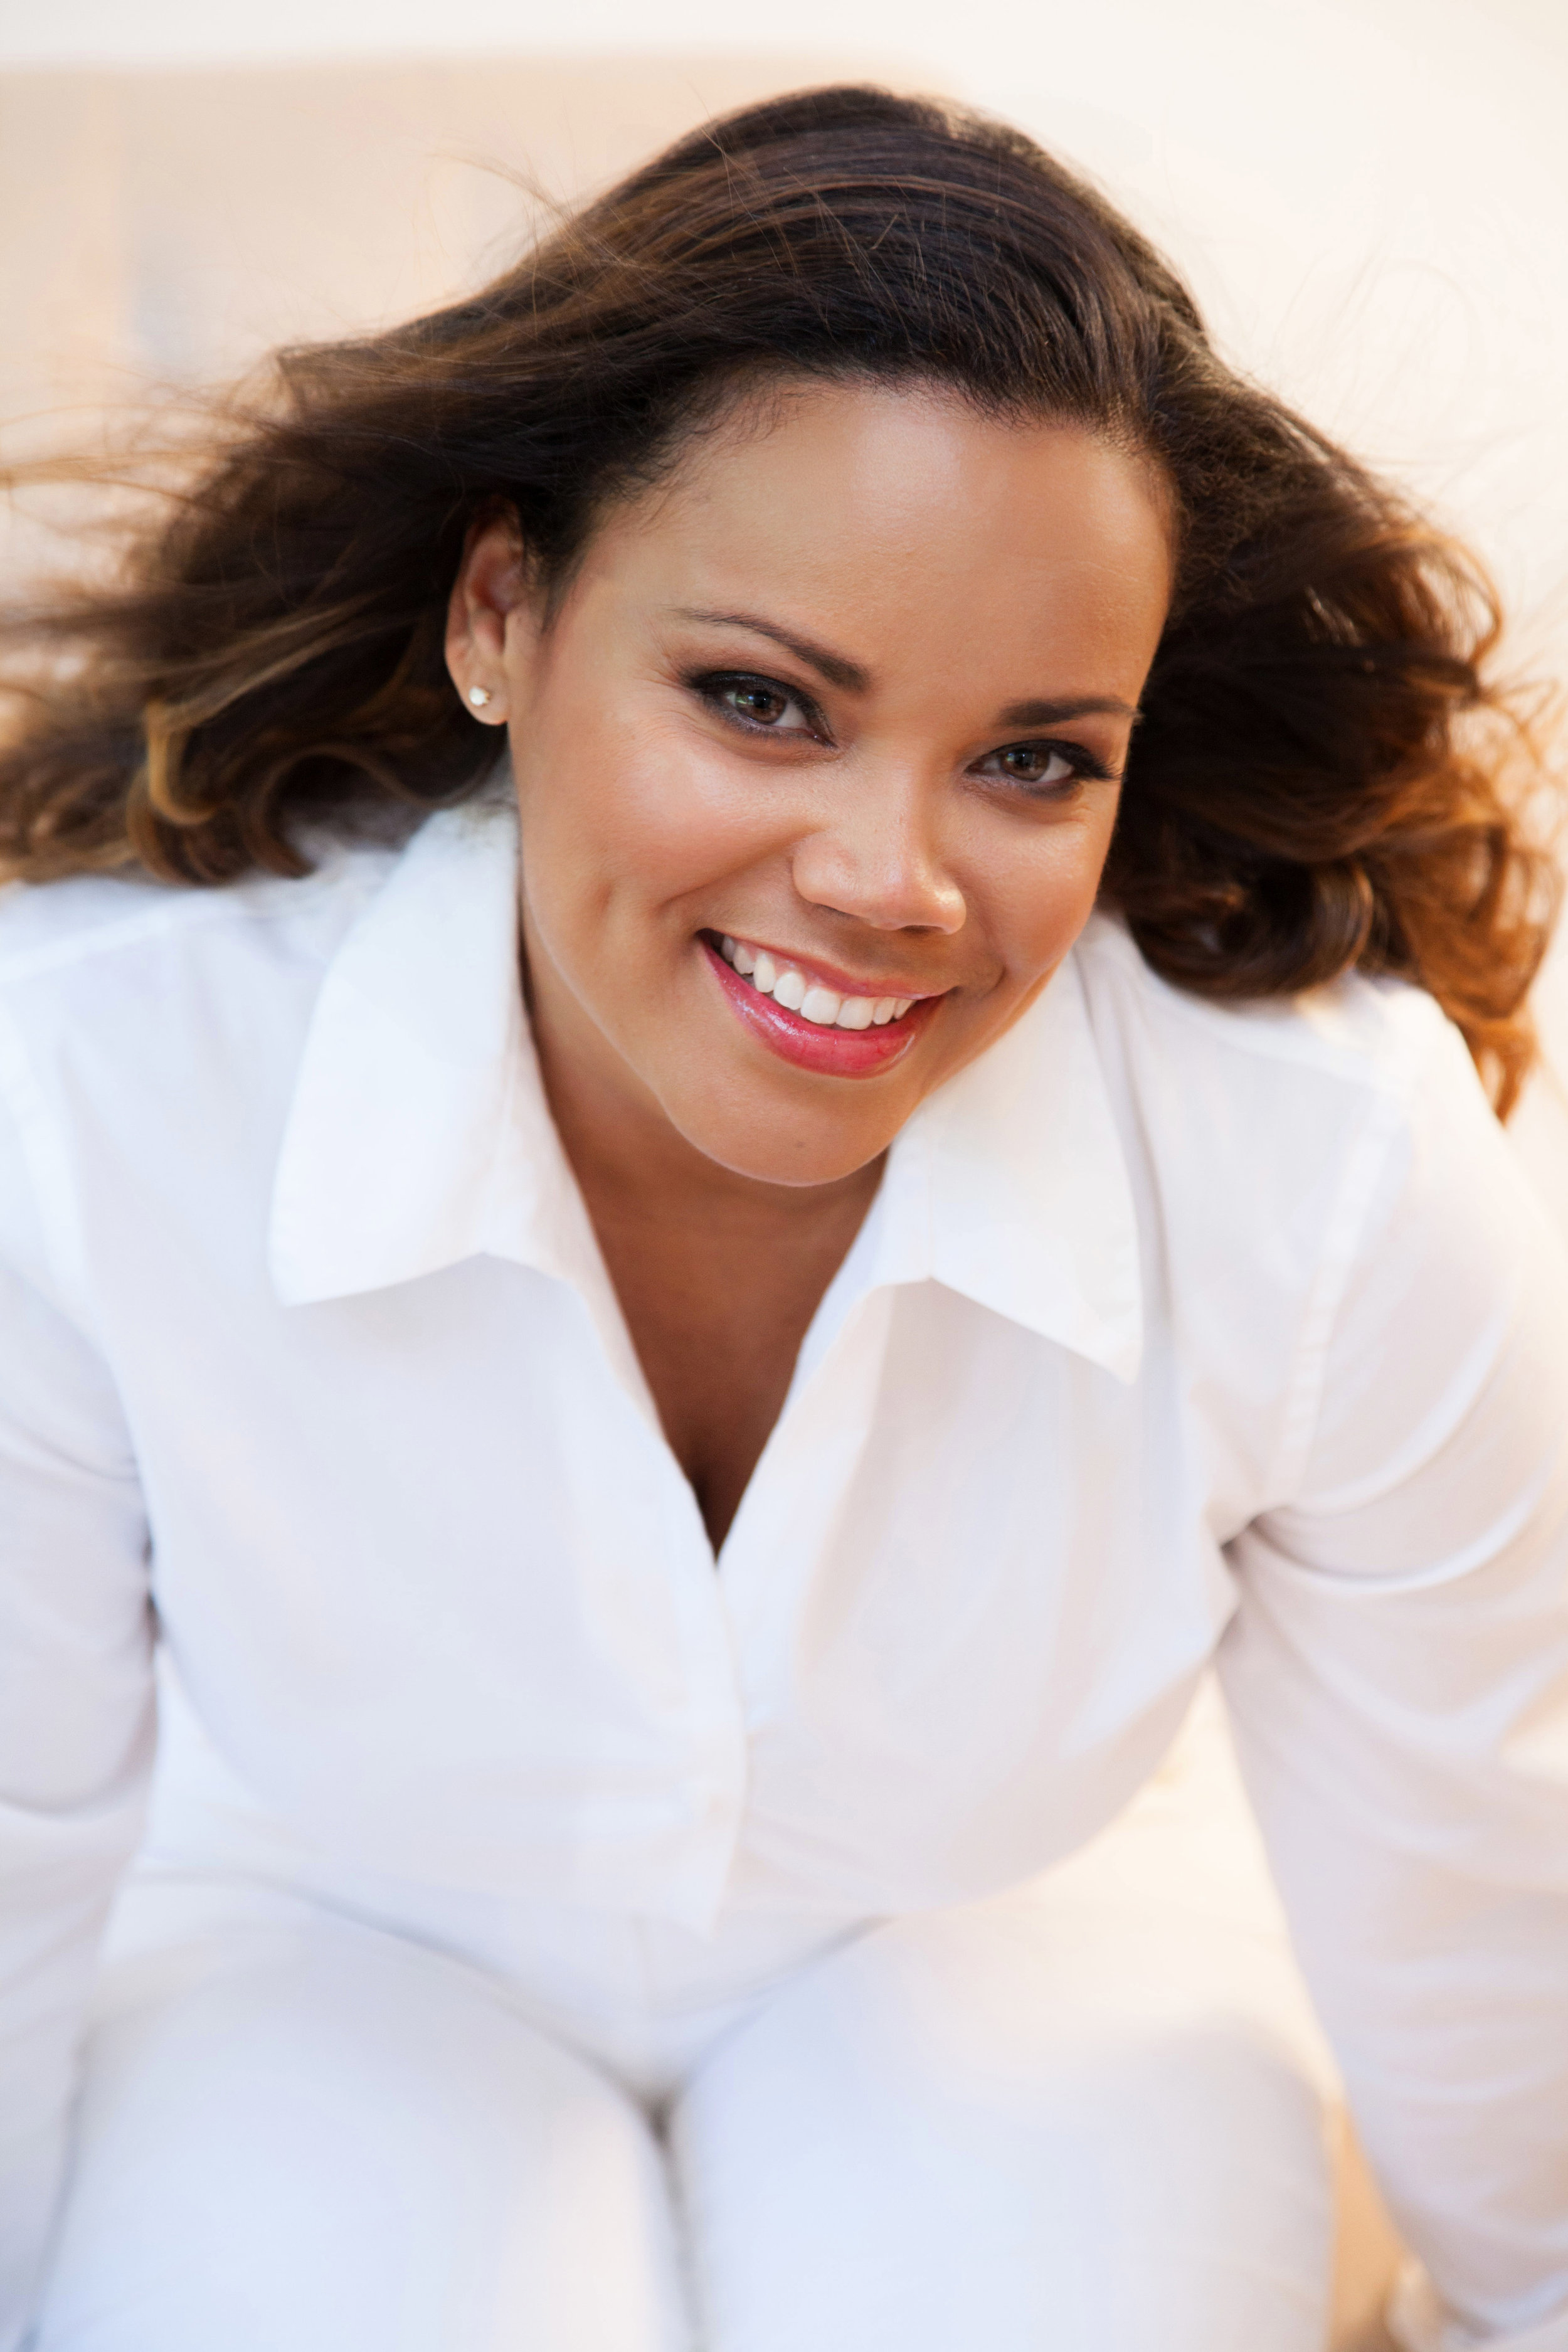 Kimberley Locke CEO of  I AM Entertainment , Founder of The Journey To A Better YOU, and creator of What's Cooking With Kimberley